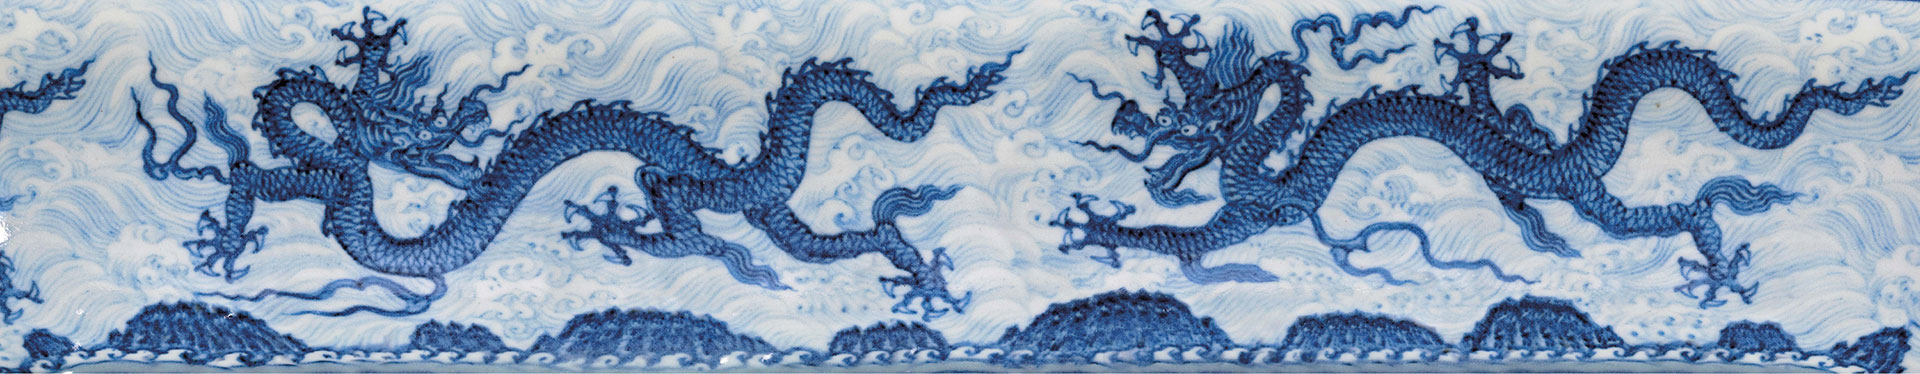 chinese-ceramics-and-works-of-art-banner-FINAL_15_1_20170103145606.jpg